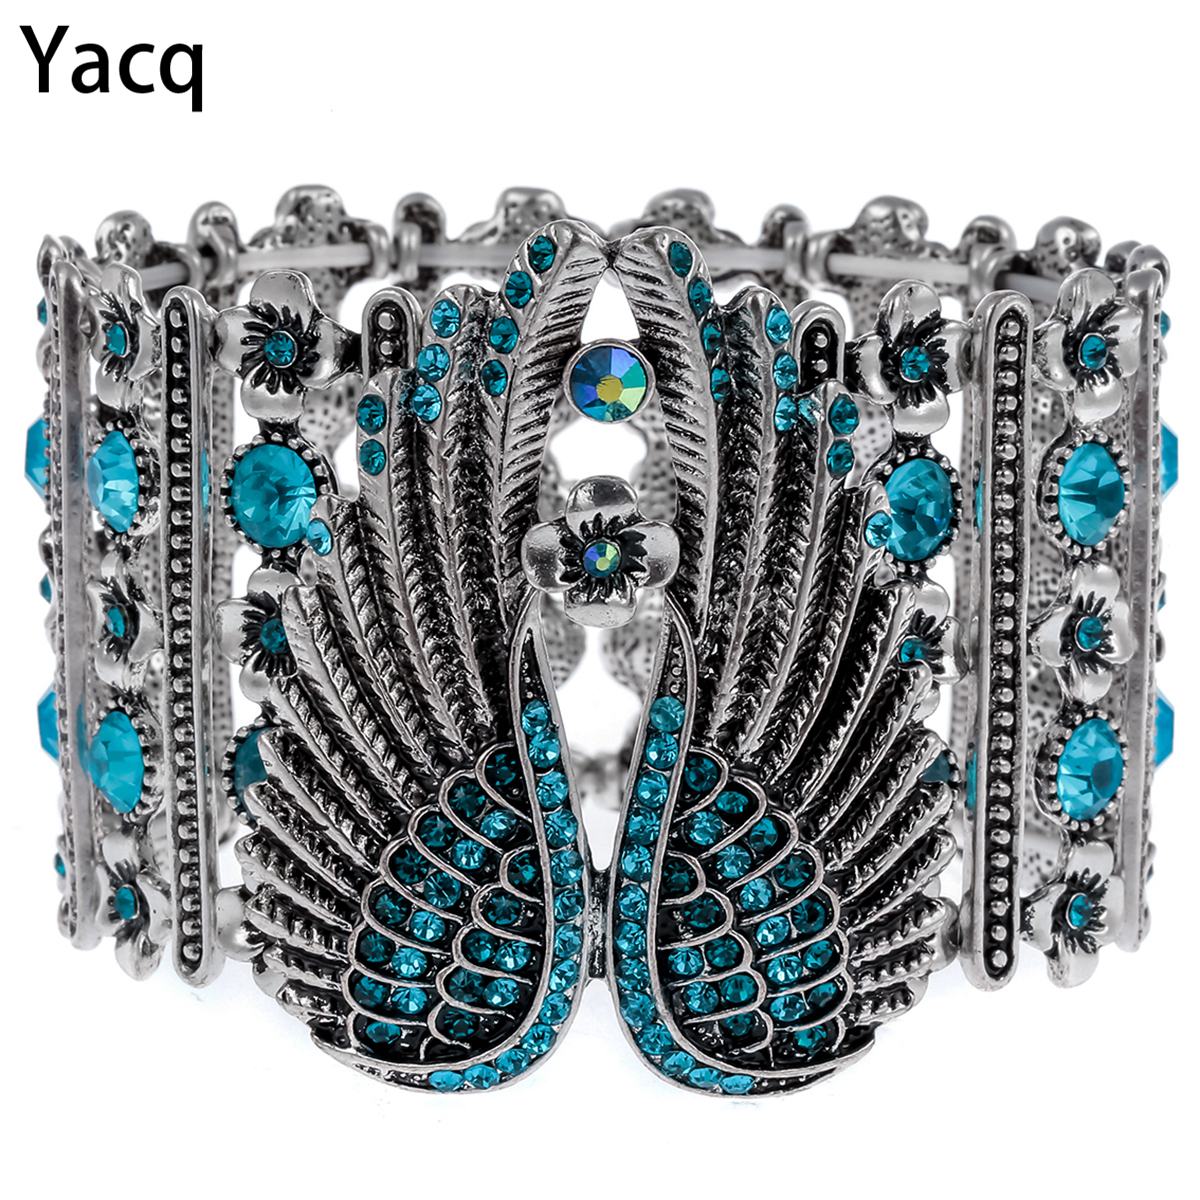 YACQ Guardian Angel Wings Bratara Stretch Cuff pentru femei Biker Crystal Punk Bijuterii cadou Antique Silver Color Dropshipping D05